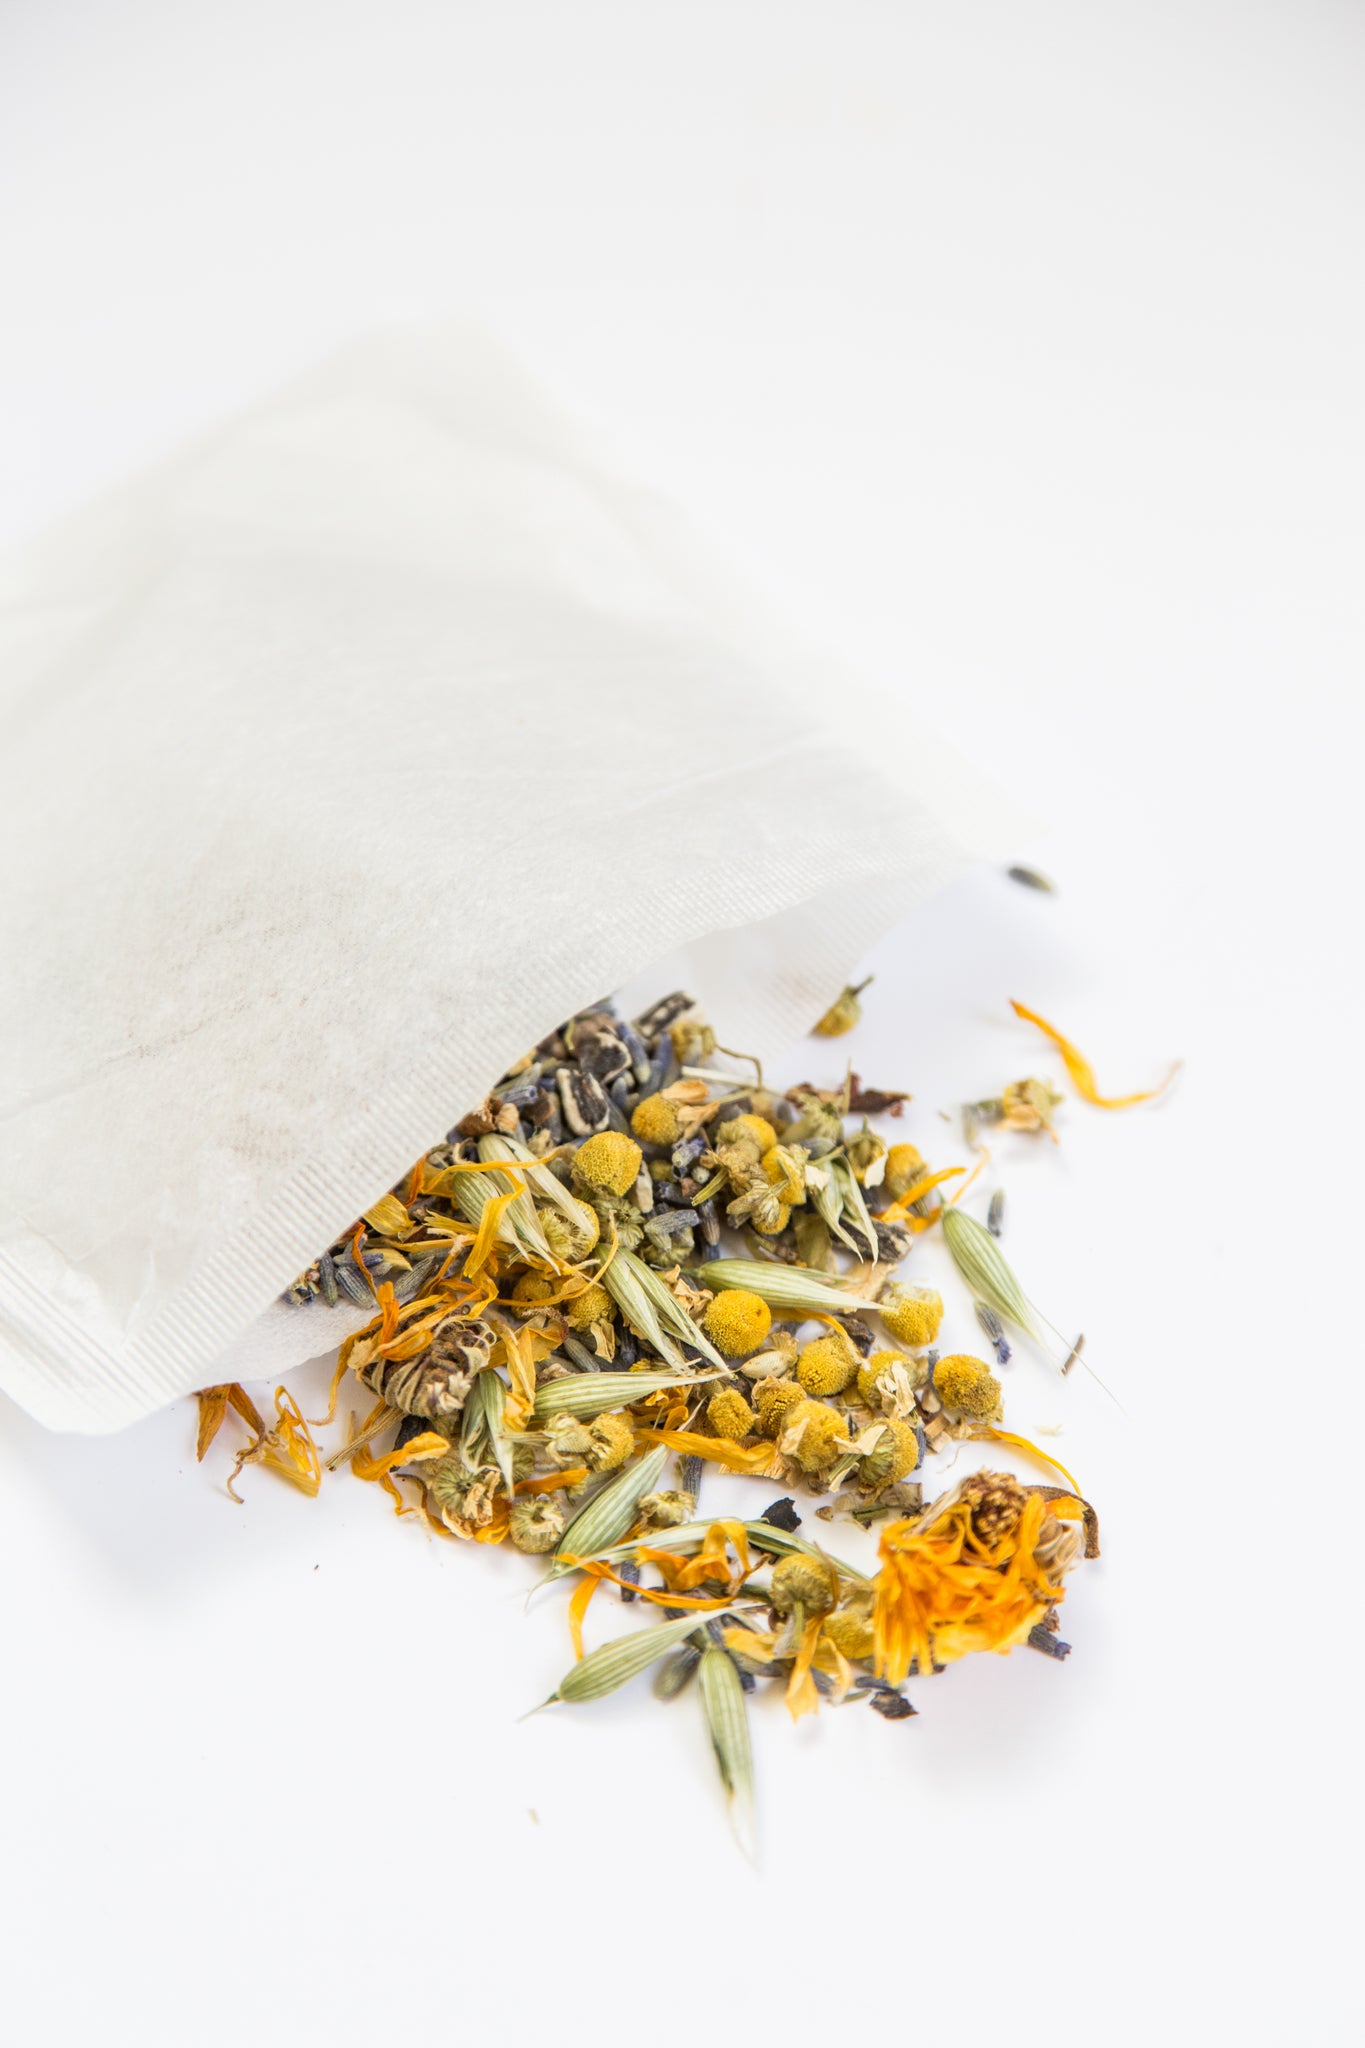 Nourishing Bath Herbs